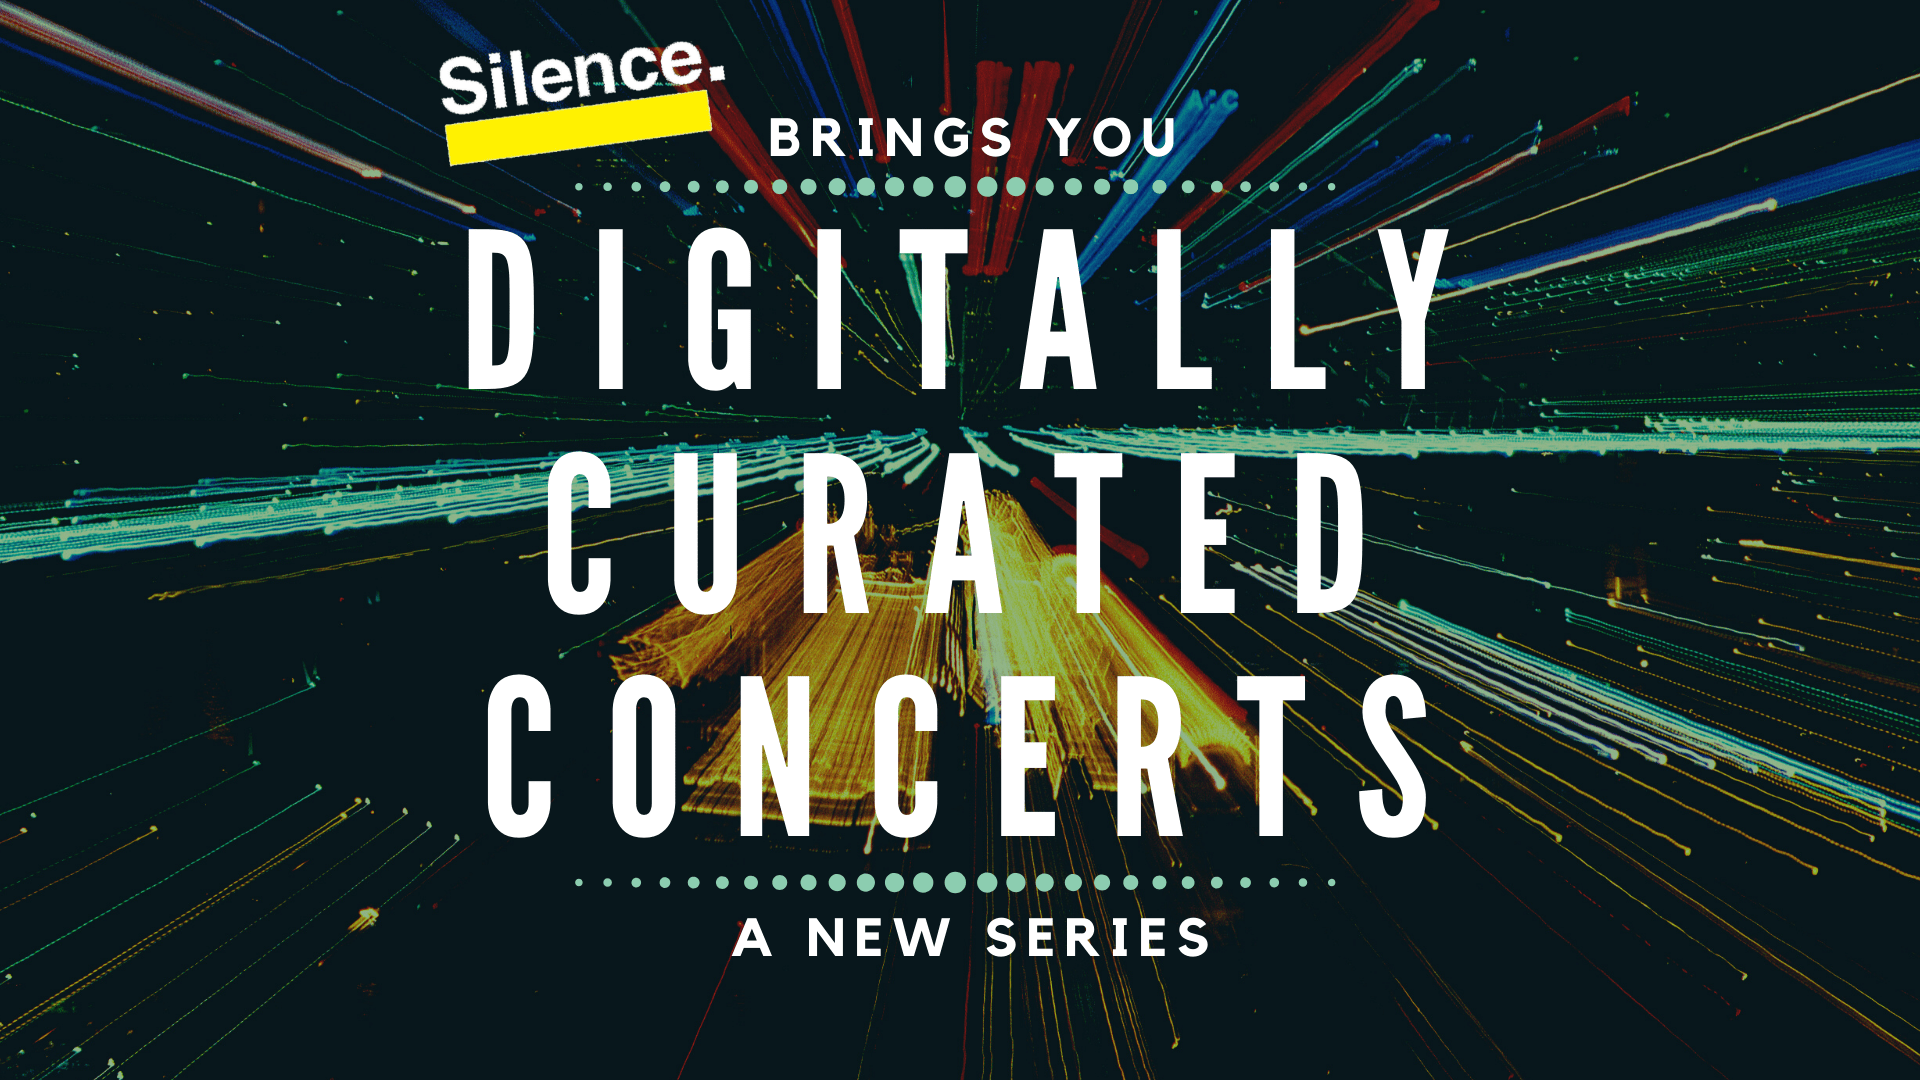 Digitally Curated Concert